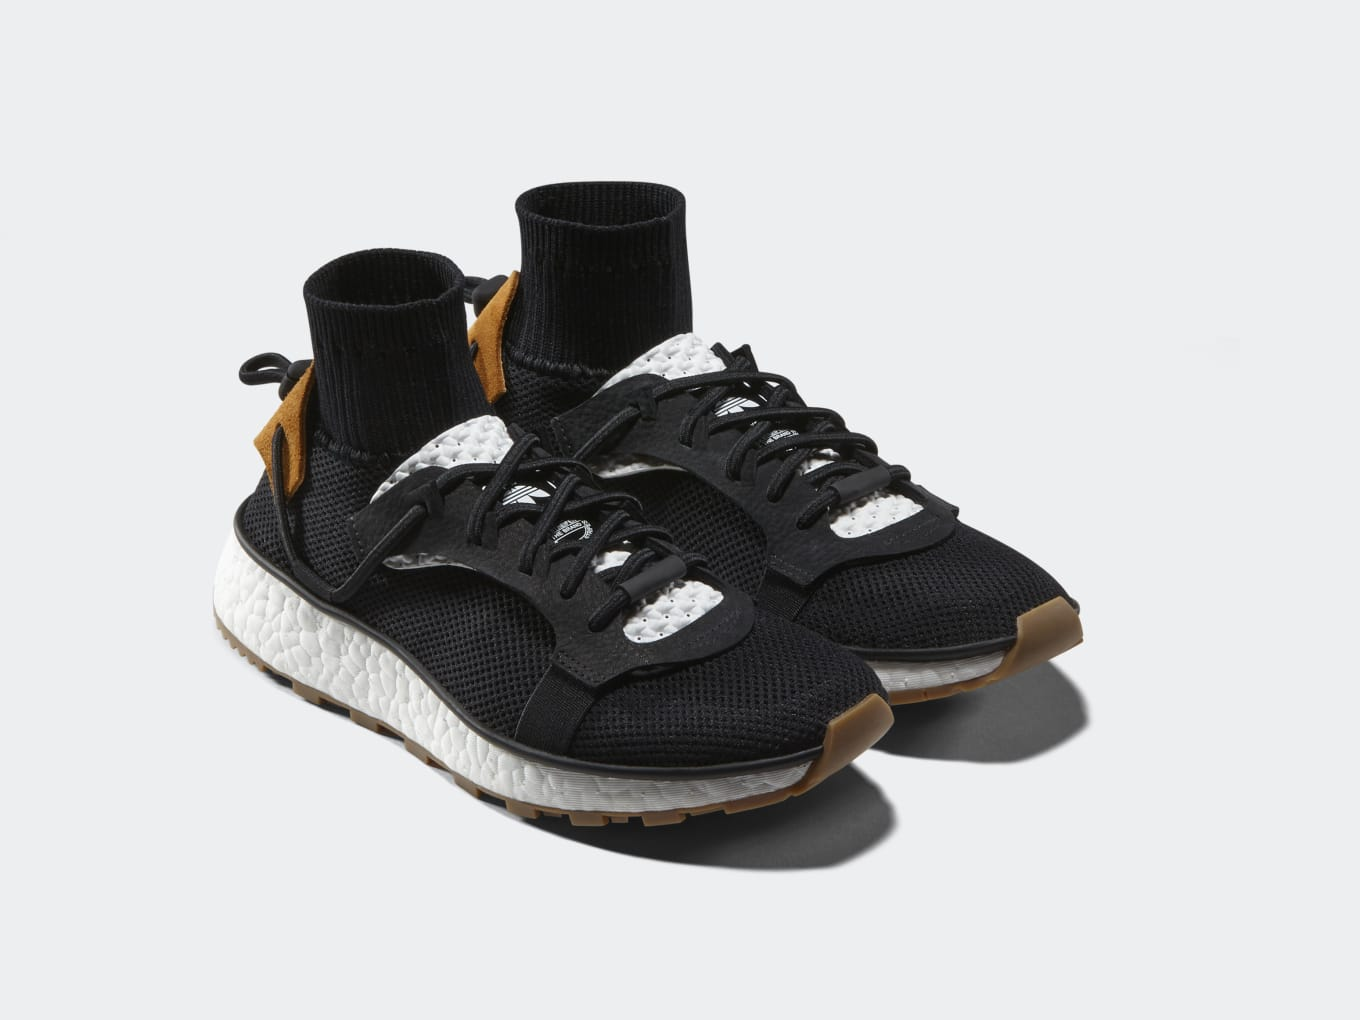 low priced 6dacf 18536 Alexander Wangs Adidas Sneakers Are Releasing Soon